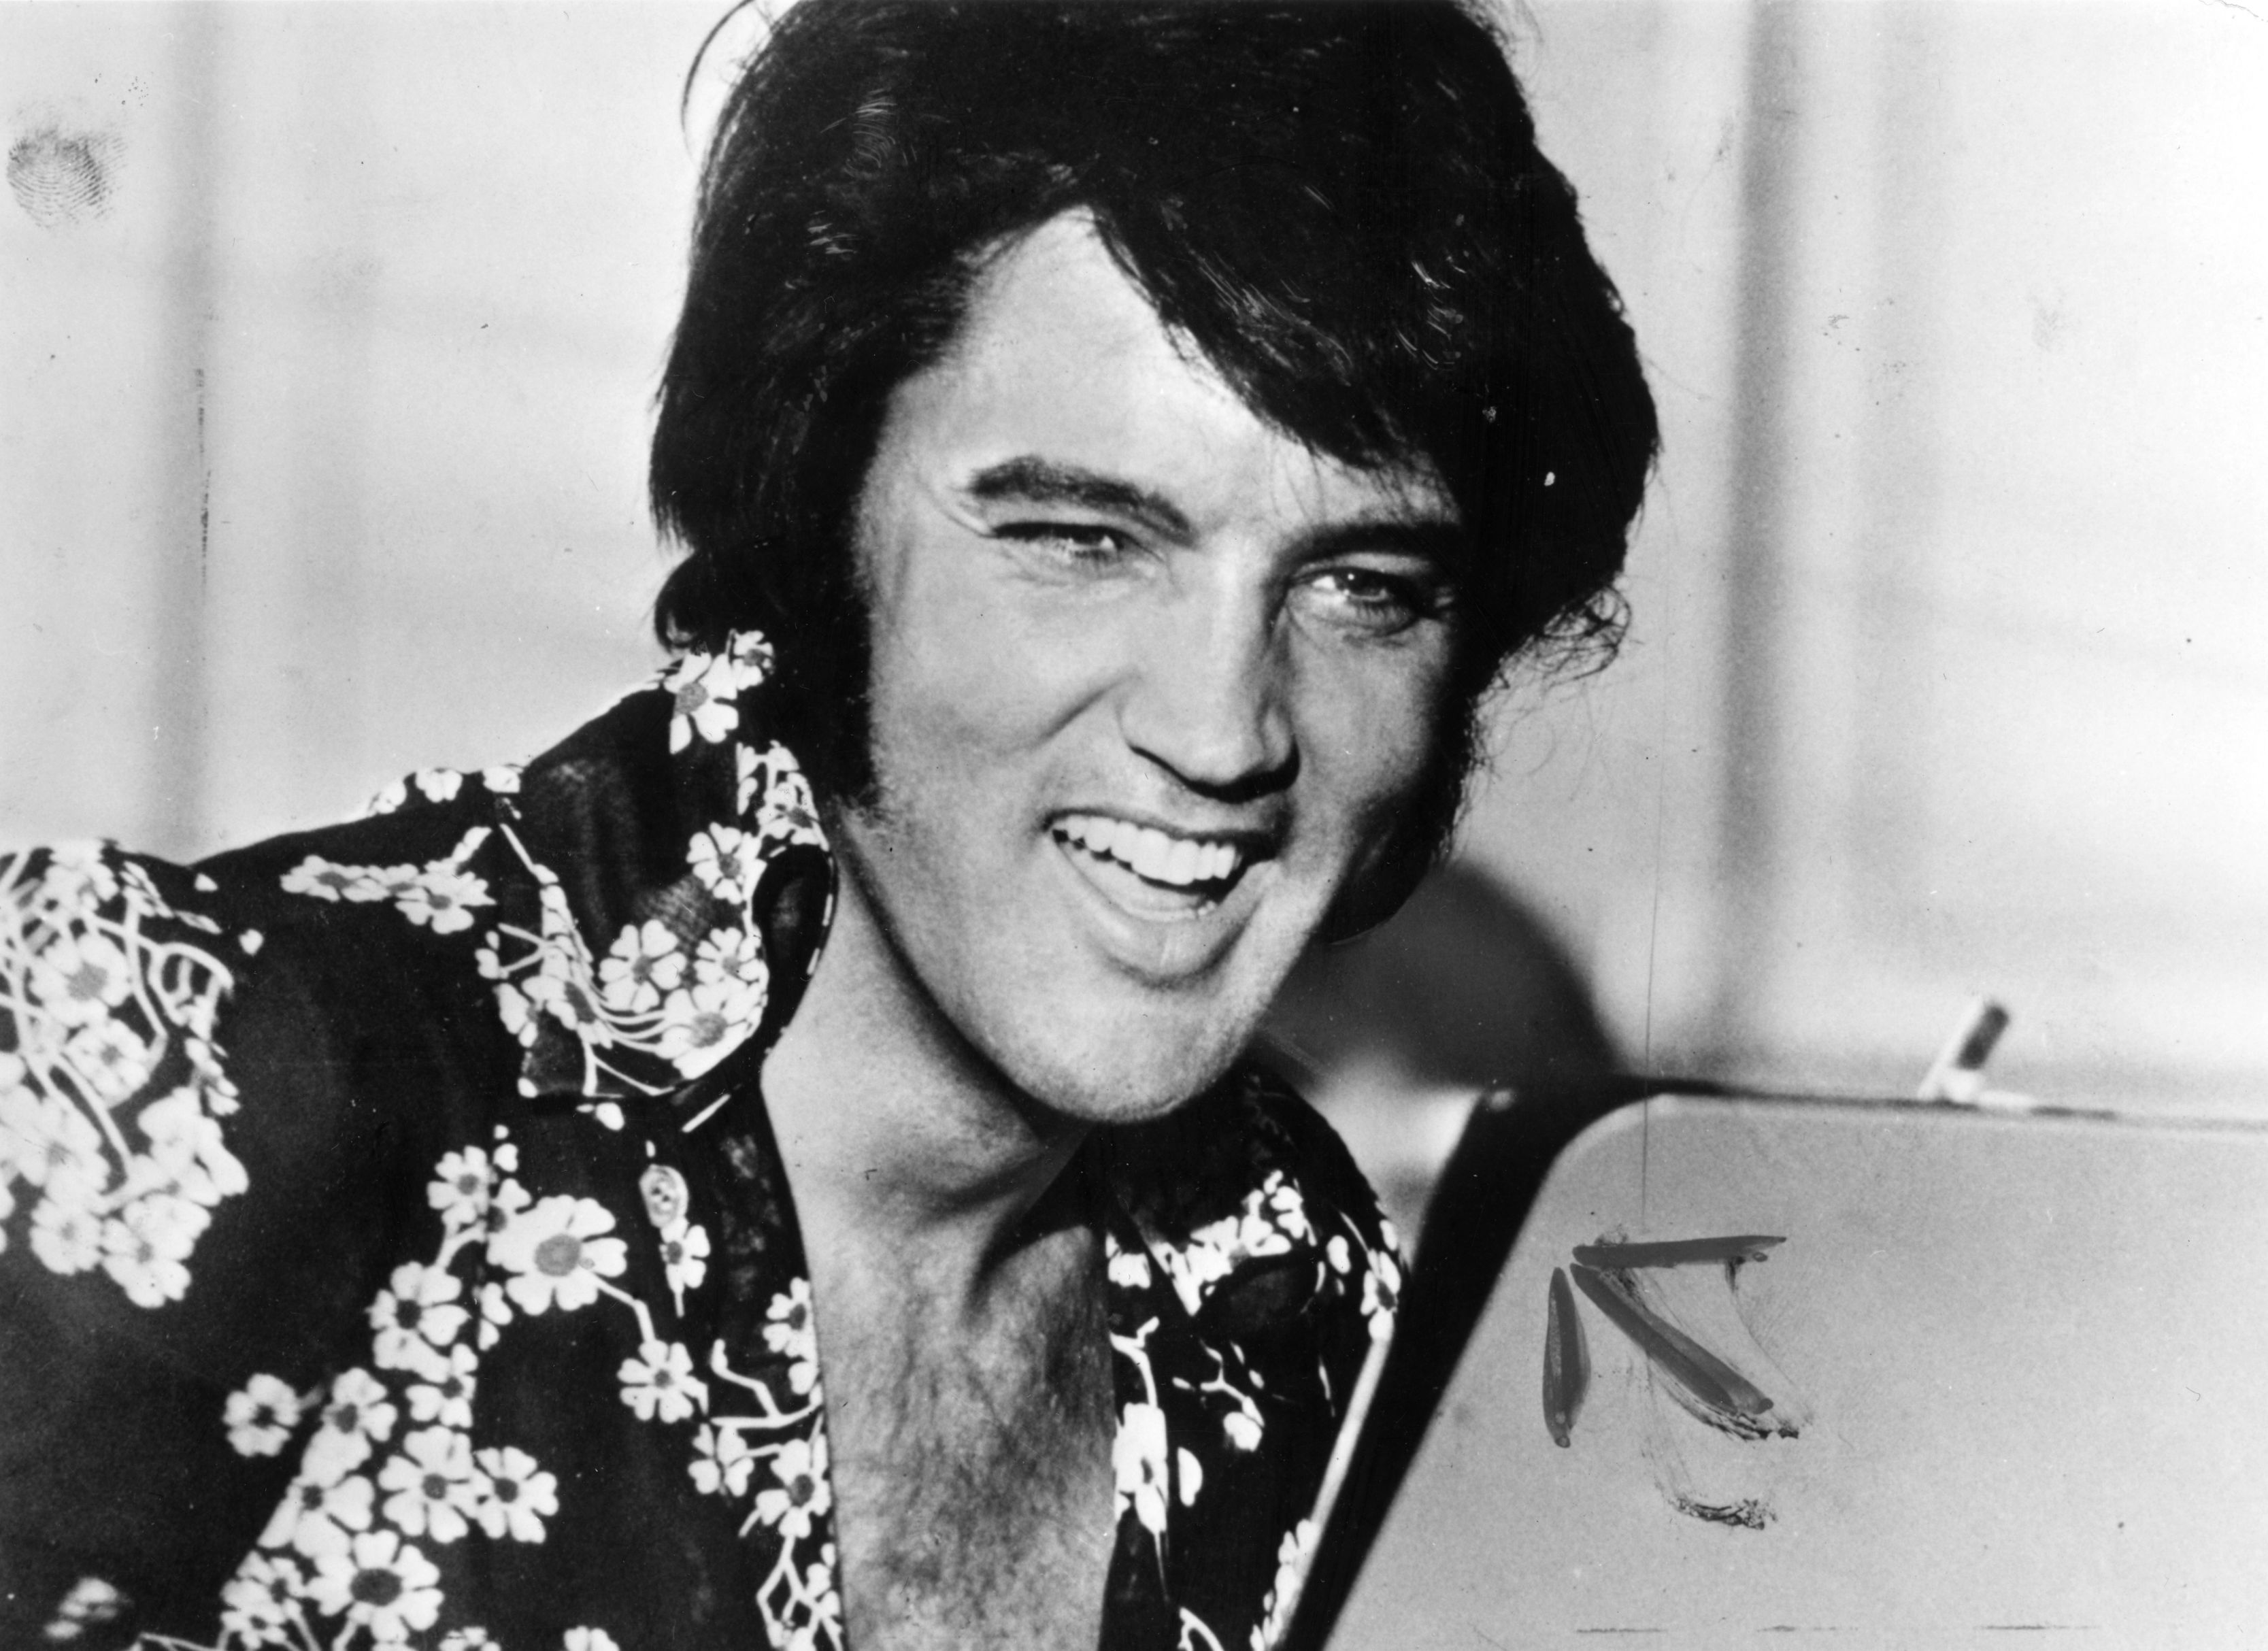 Elvis Presley laughing circa 1975   Photo: Getty Images